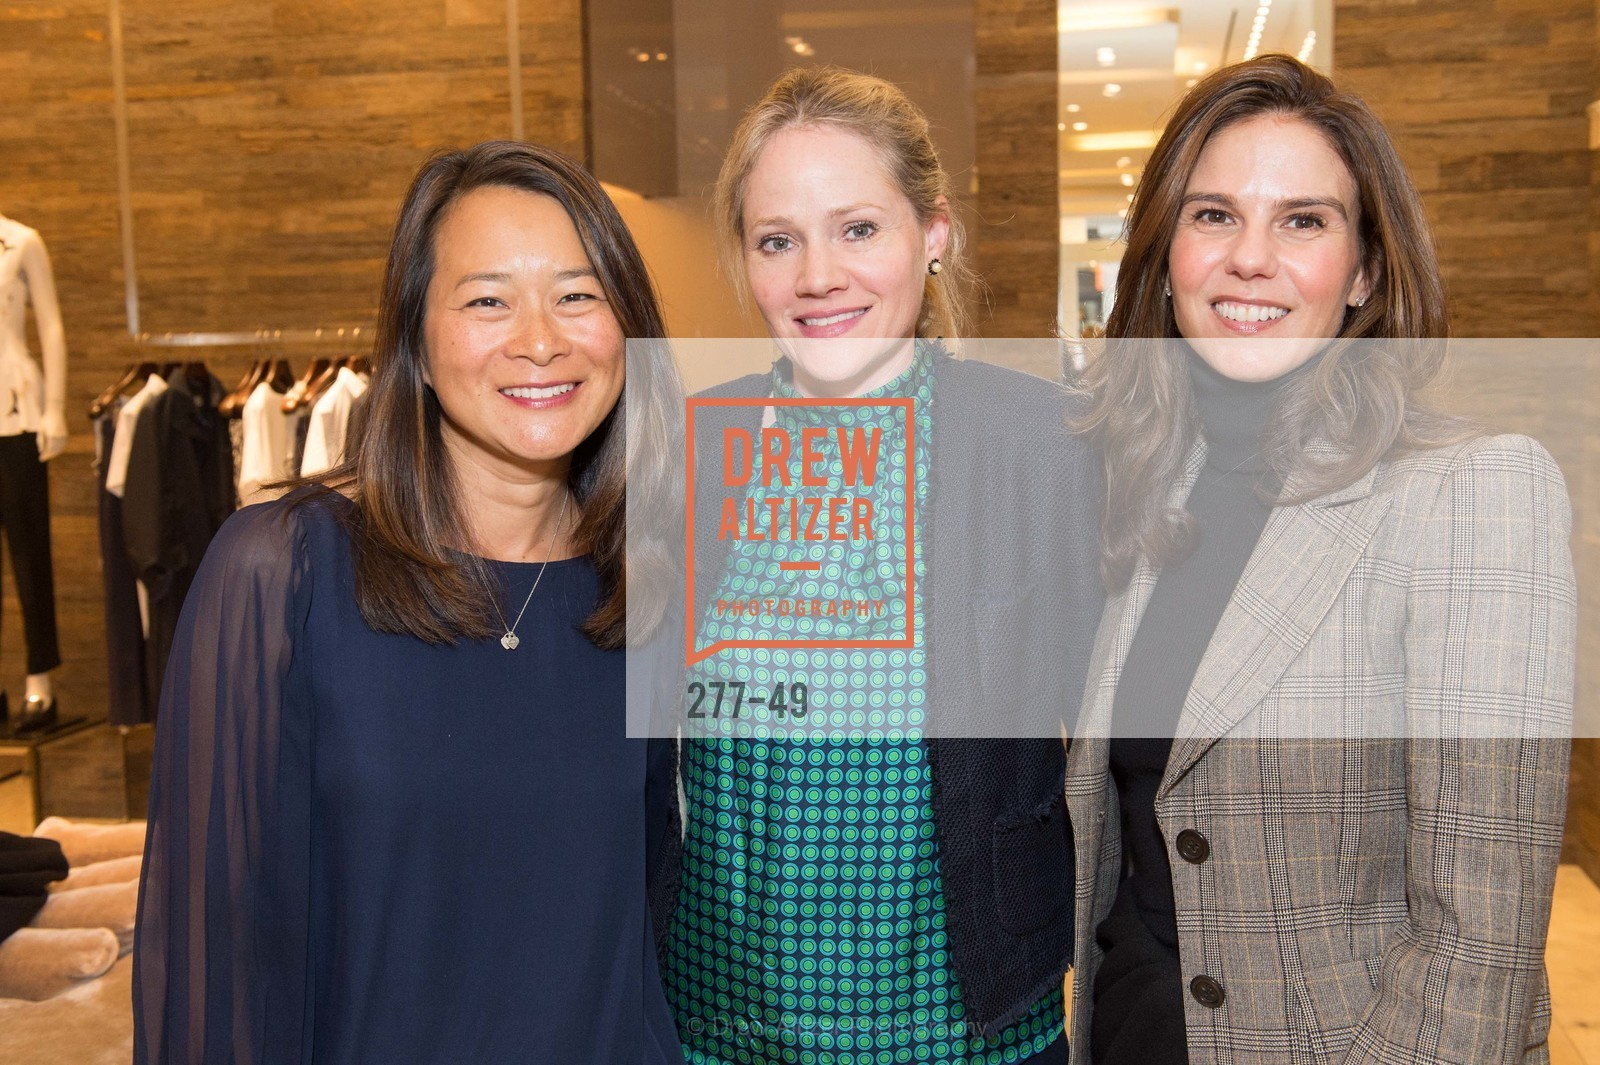 Jennifer Vander Marck, Camille Marks, Andrea Zola, Luncheon Hosted by Max Mara, Max Mara. 175 Post St, San Francisco, CA 94108, April 21st, 2015,Drew Altizer, Drew Altizer Photography, full-service event agency, private events, San Francisco photographer, photographer California